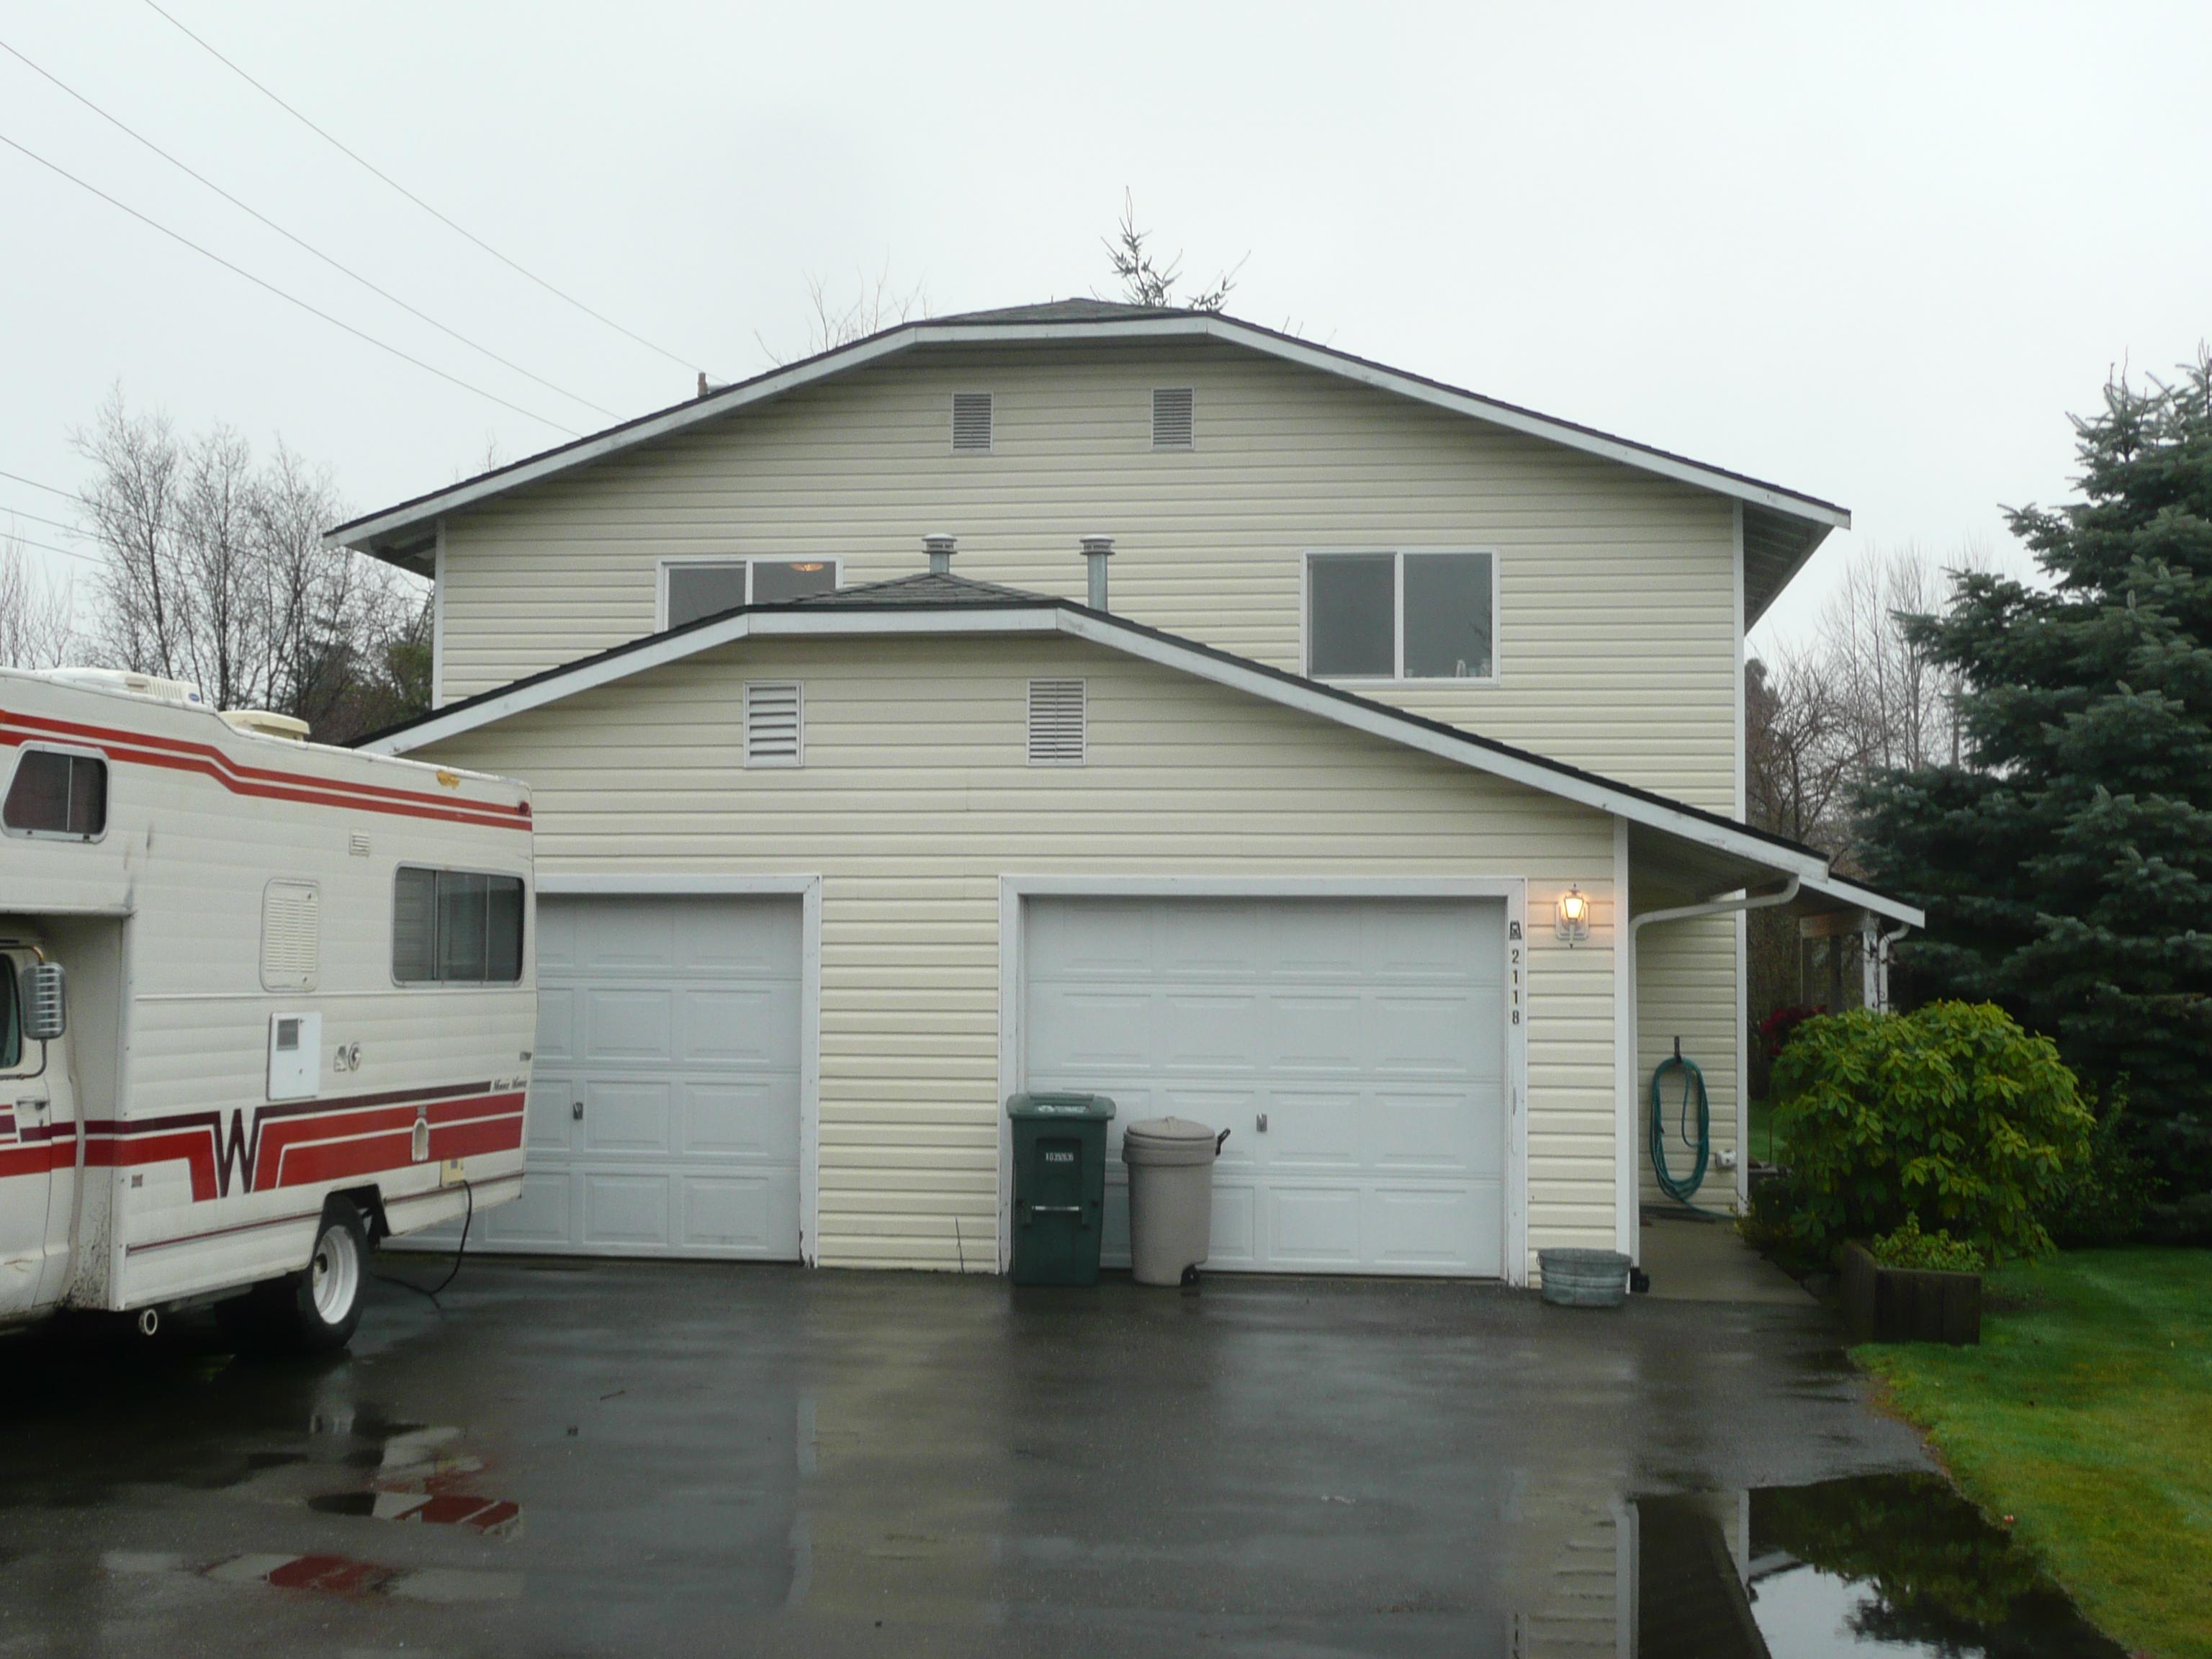 ForSaleByOwner (FSBO) home in Anacortes, WA at ForSaleByOwnerBuyersGuide.com